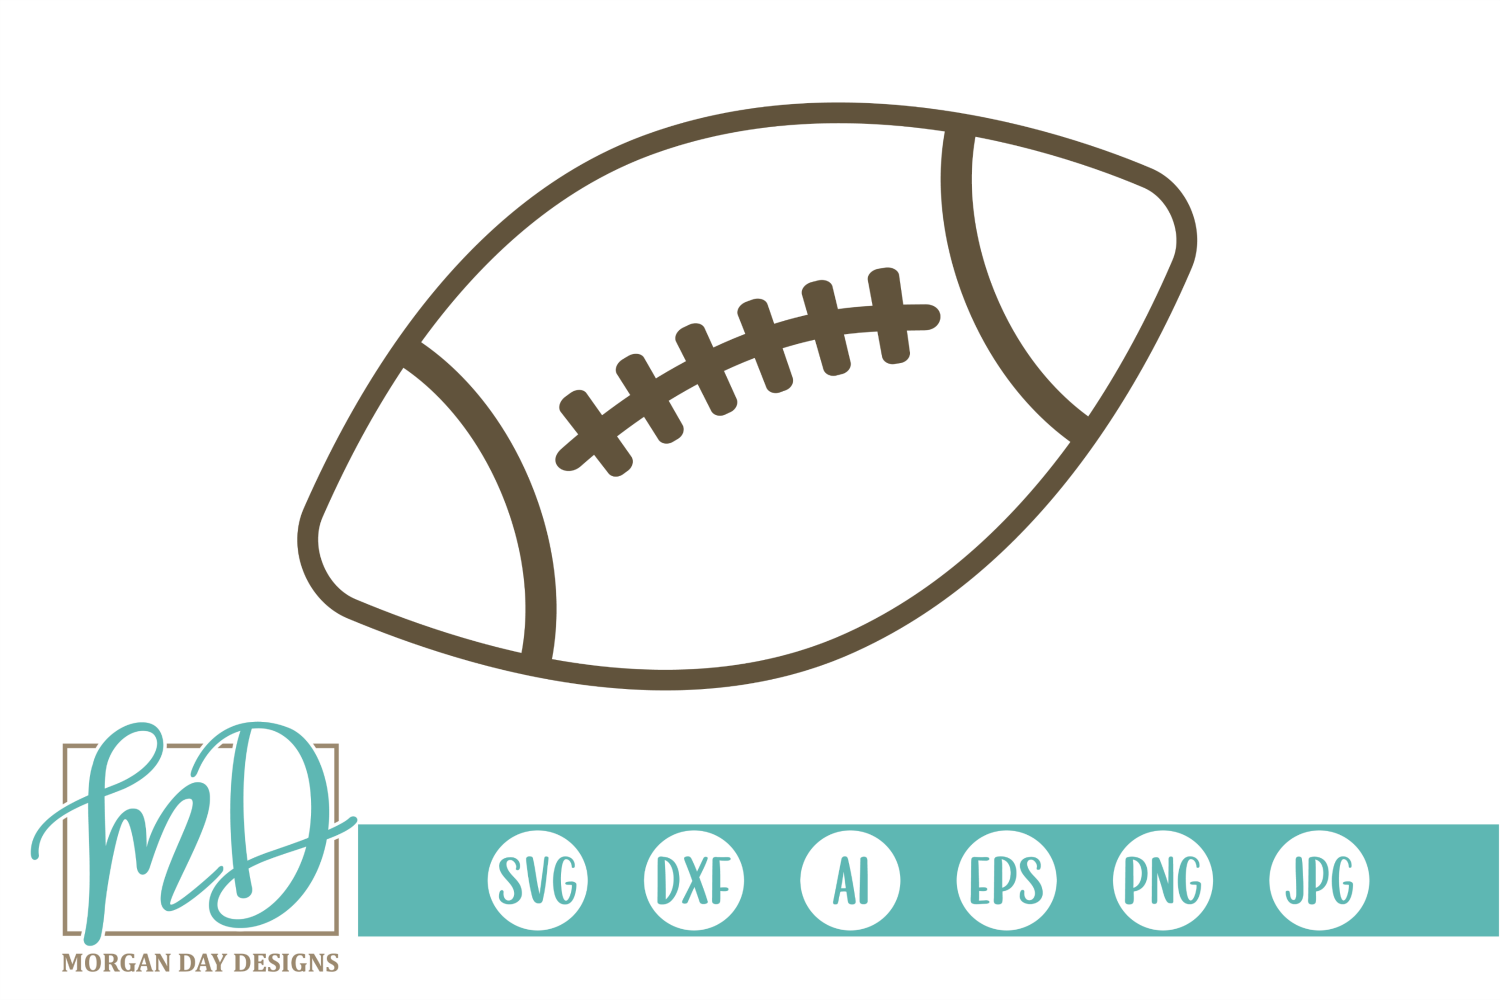 Football - Football Outline SVG, DXF, AI, EPS, PNG, JPEG example image 1